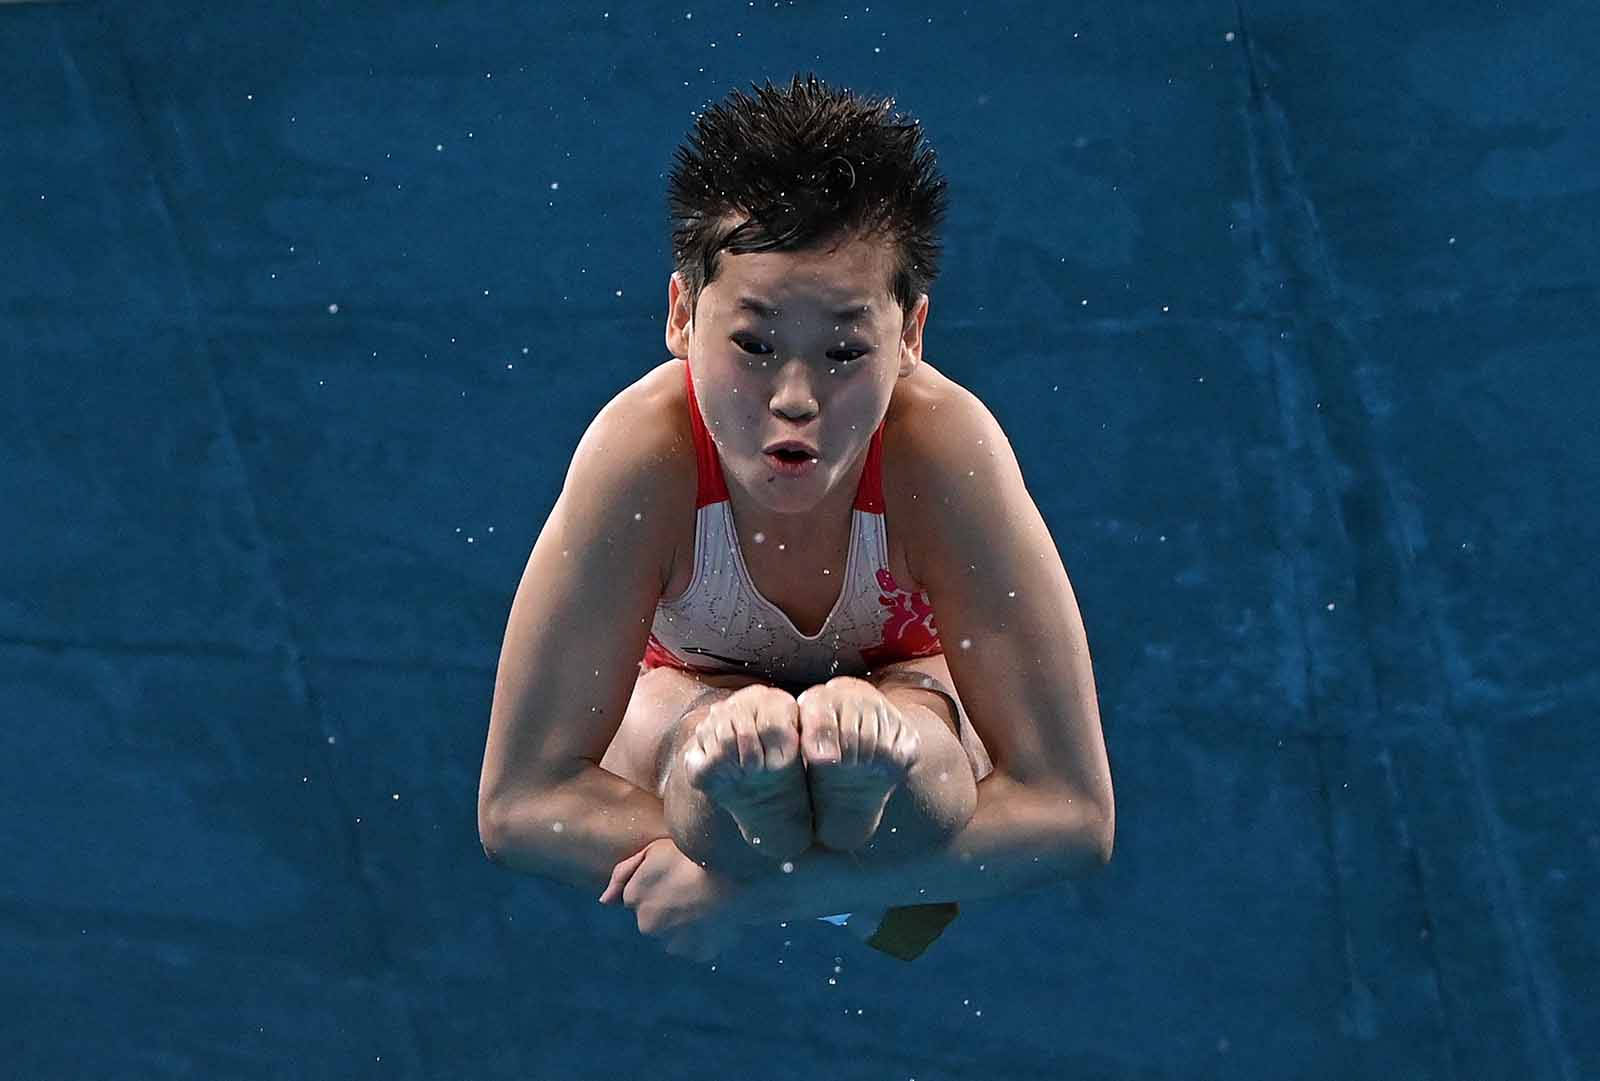 China's Quan Hongchan competes in the 10-meter platform diving final on August 5. Quan, 14, becomes the second-youngest female everto win goldin the event.